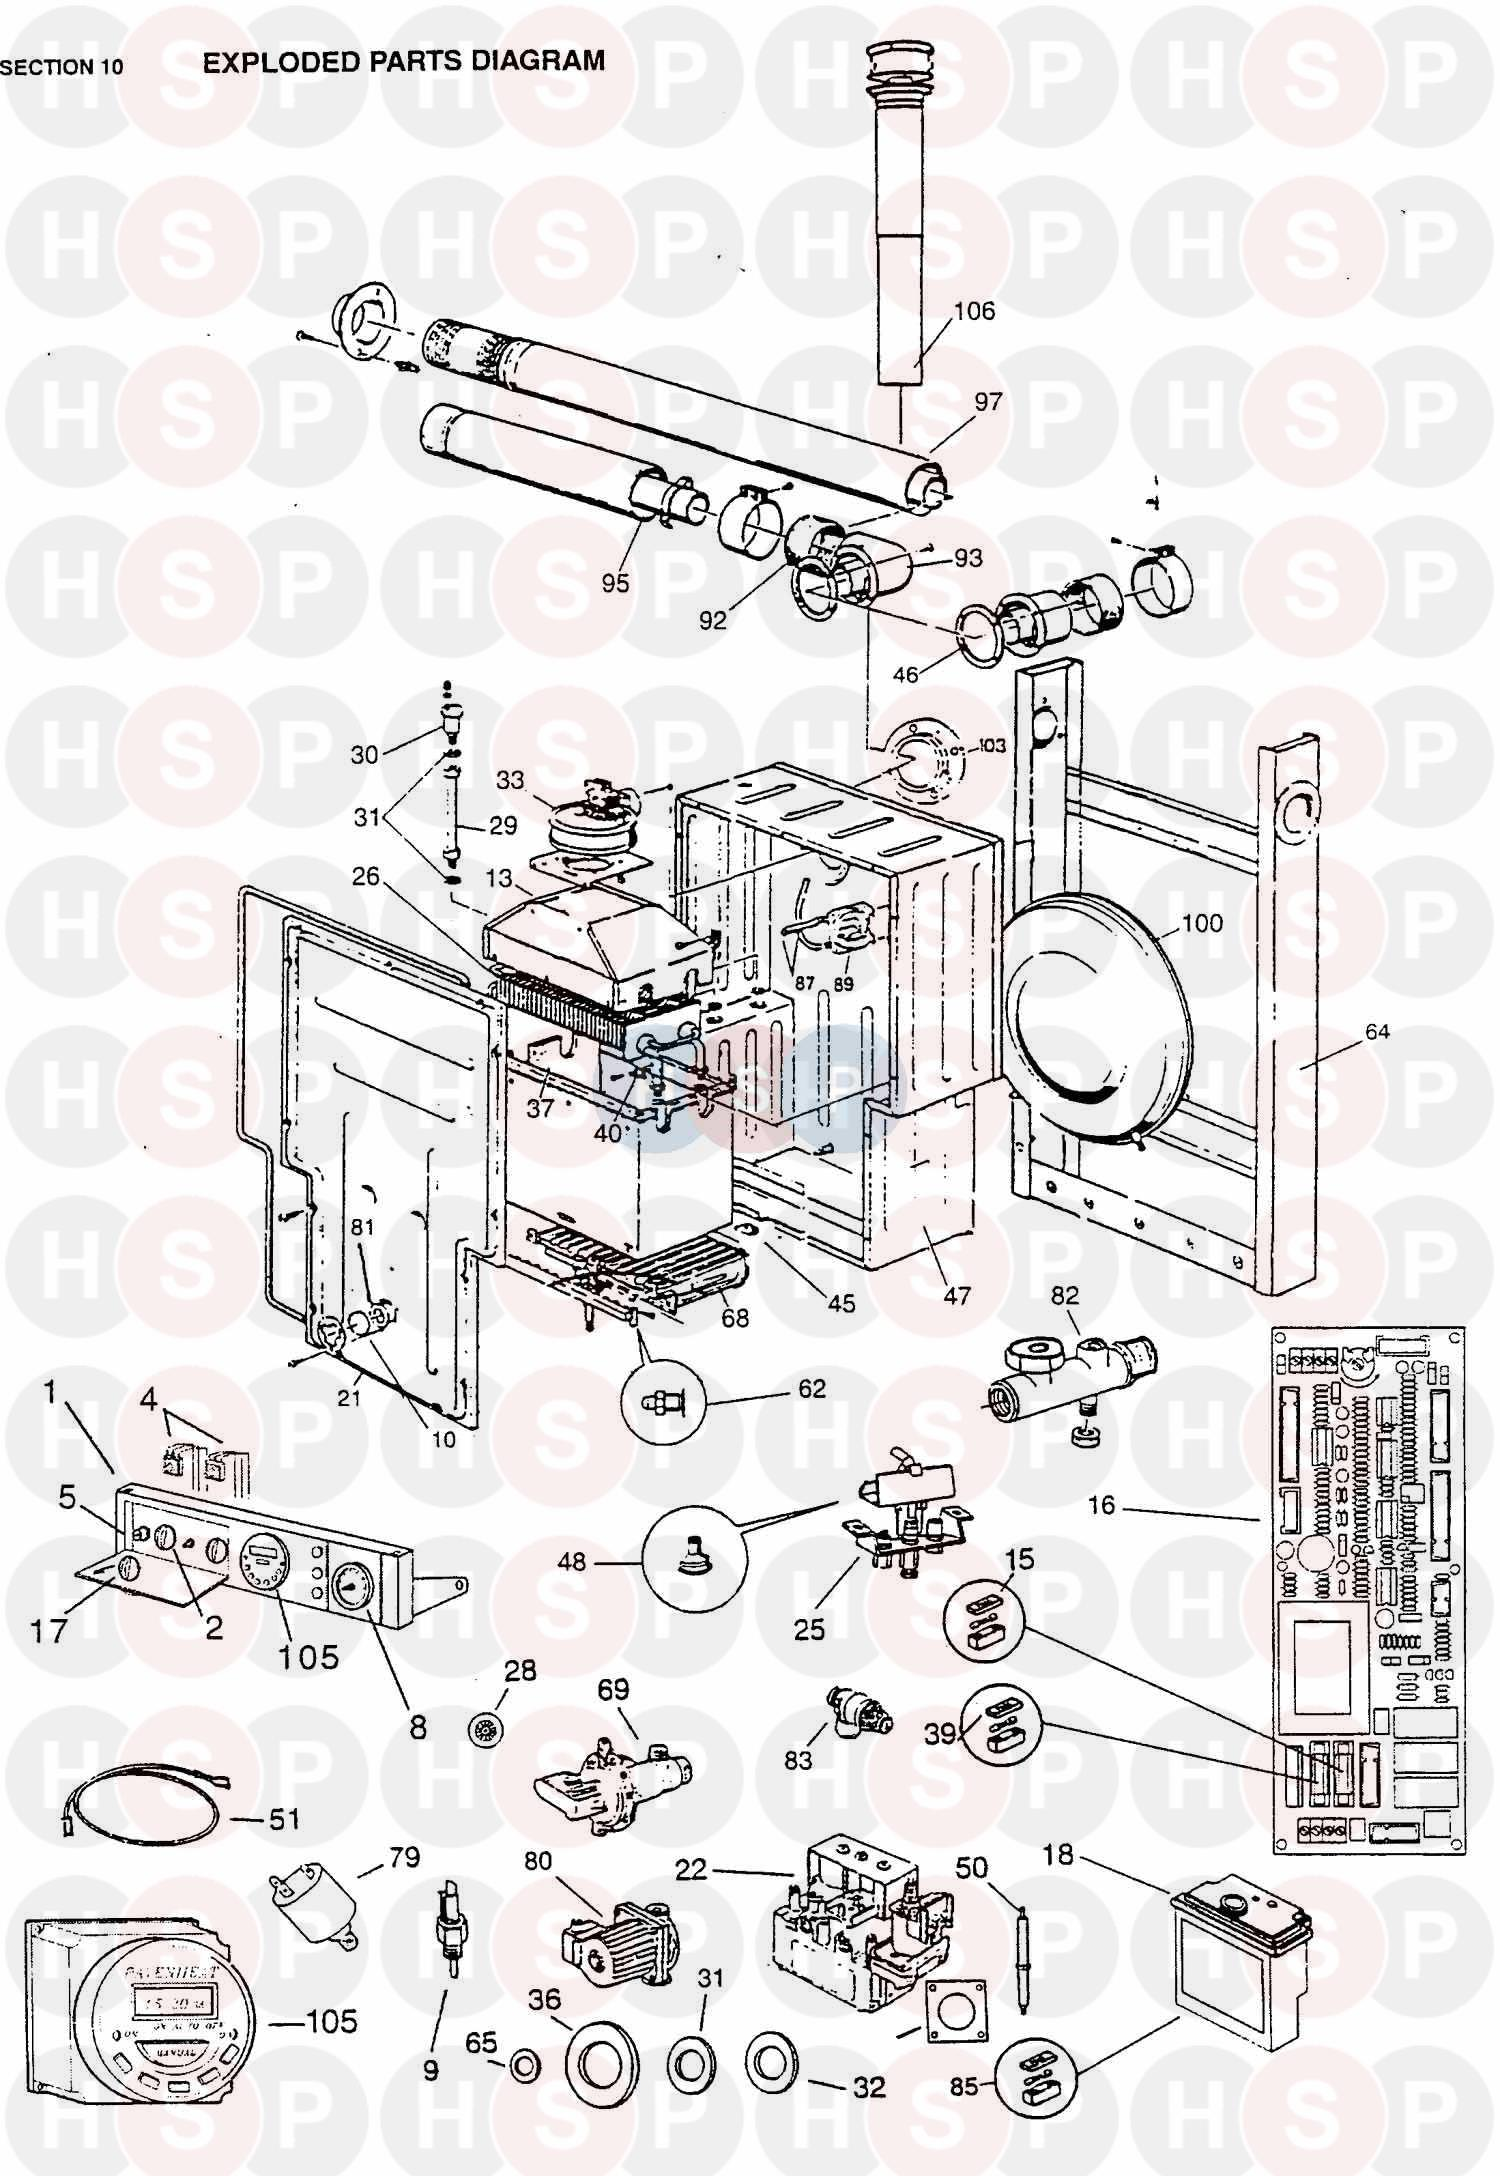 Ravenheat RSF 82ET Appliance Diagram (EXPLODED VIEW